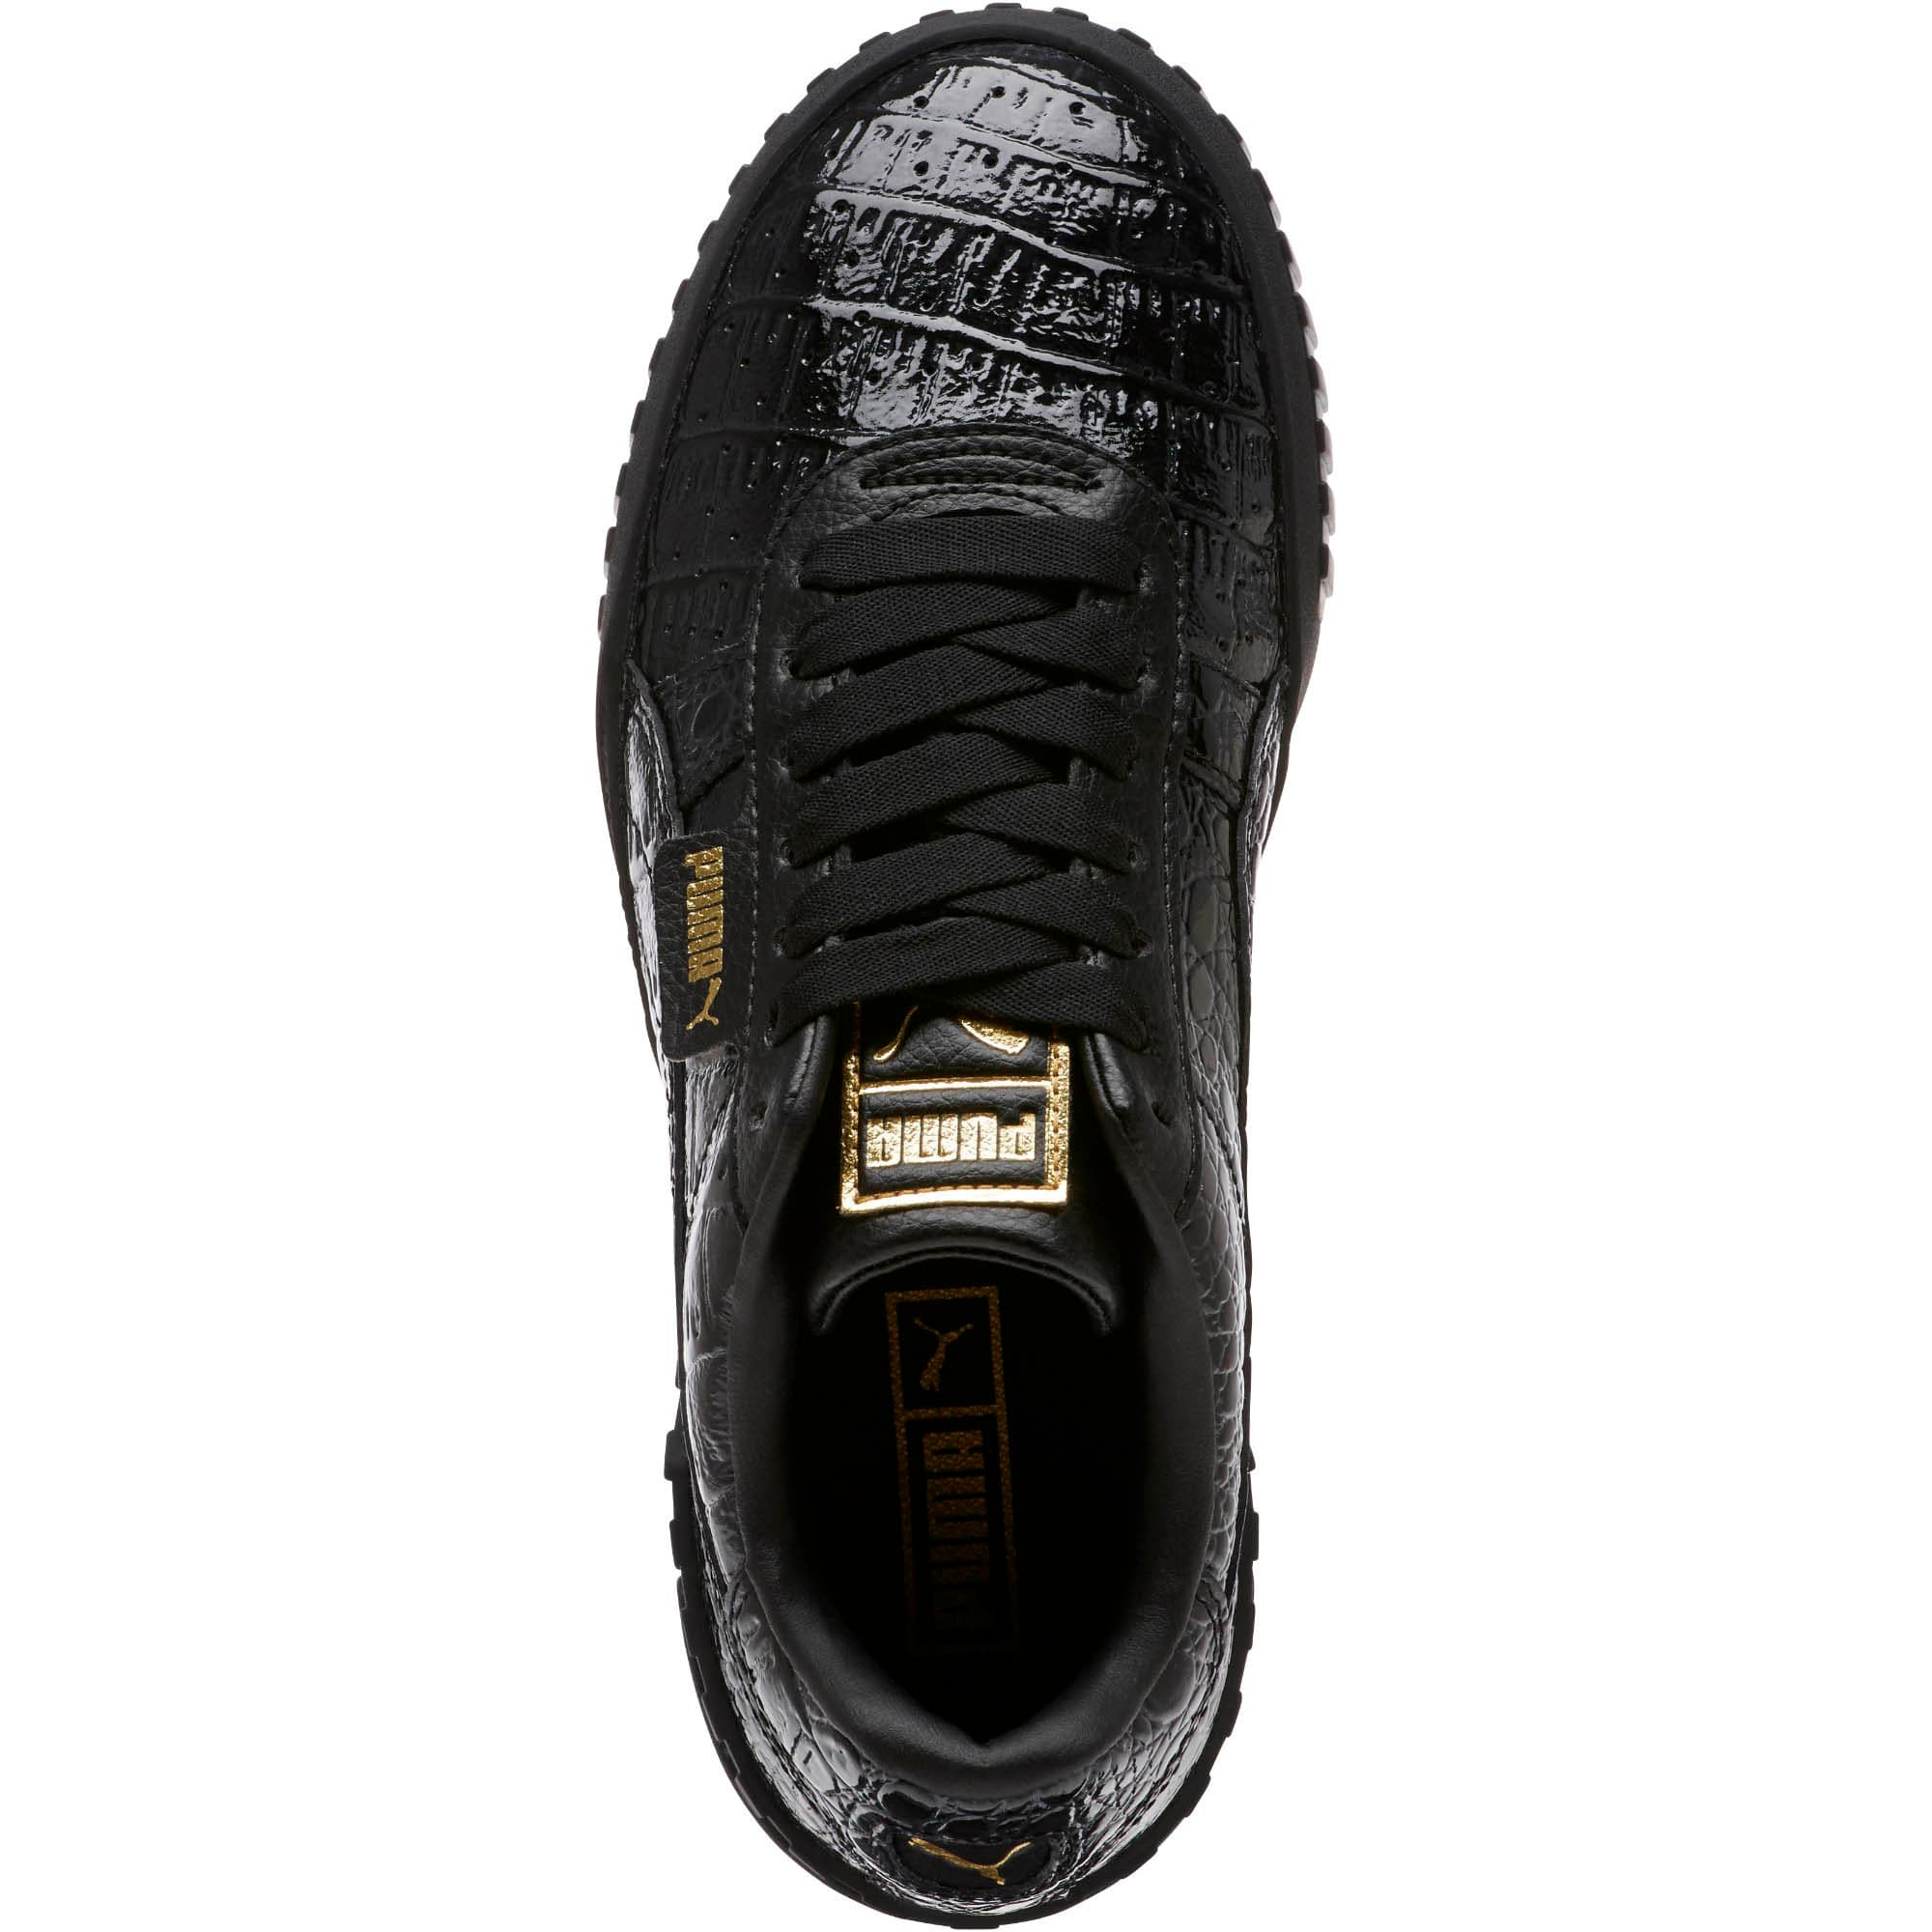 Thumbnail 5 of Cali Croc Women's Sneakers, Puma Black-Puma Black, medium